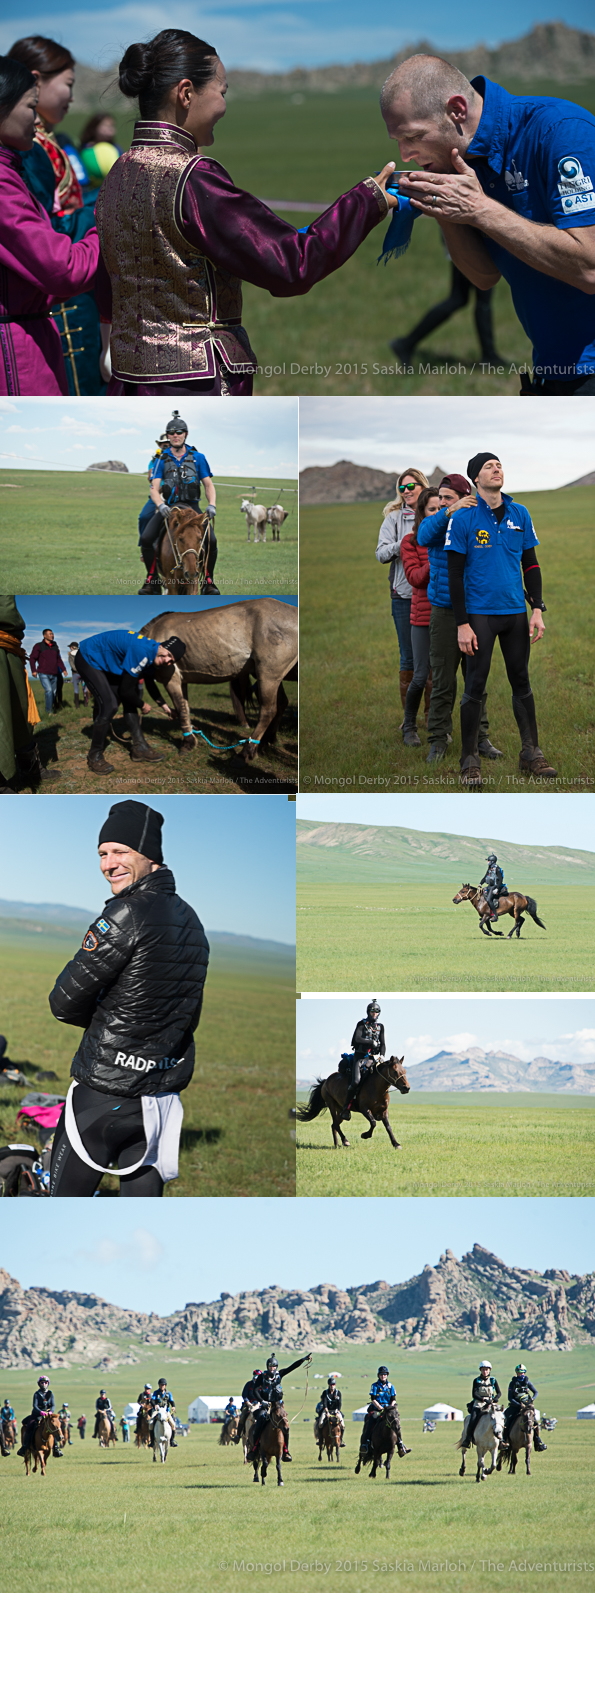 Thomas Ellingsen, place8 of the Mongol Derby 2015 photos by Saskia Marloh